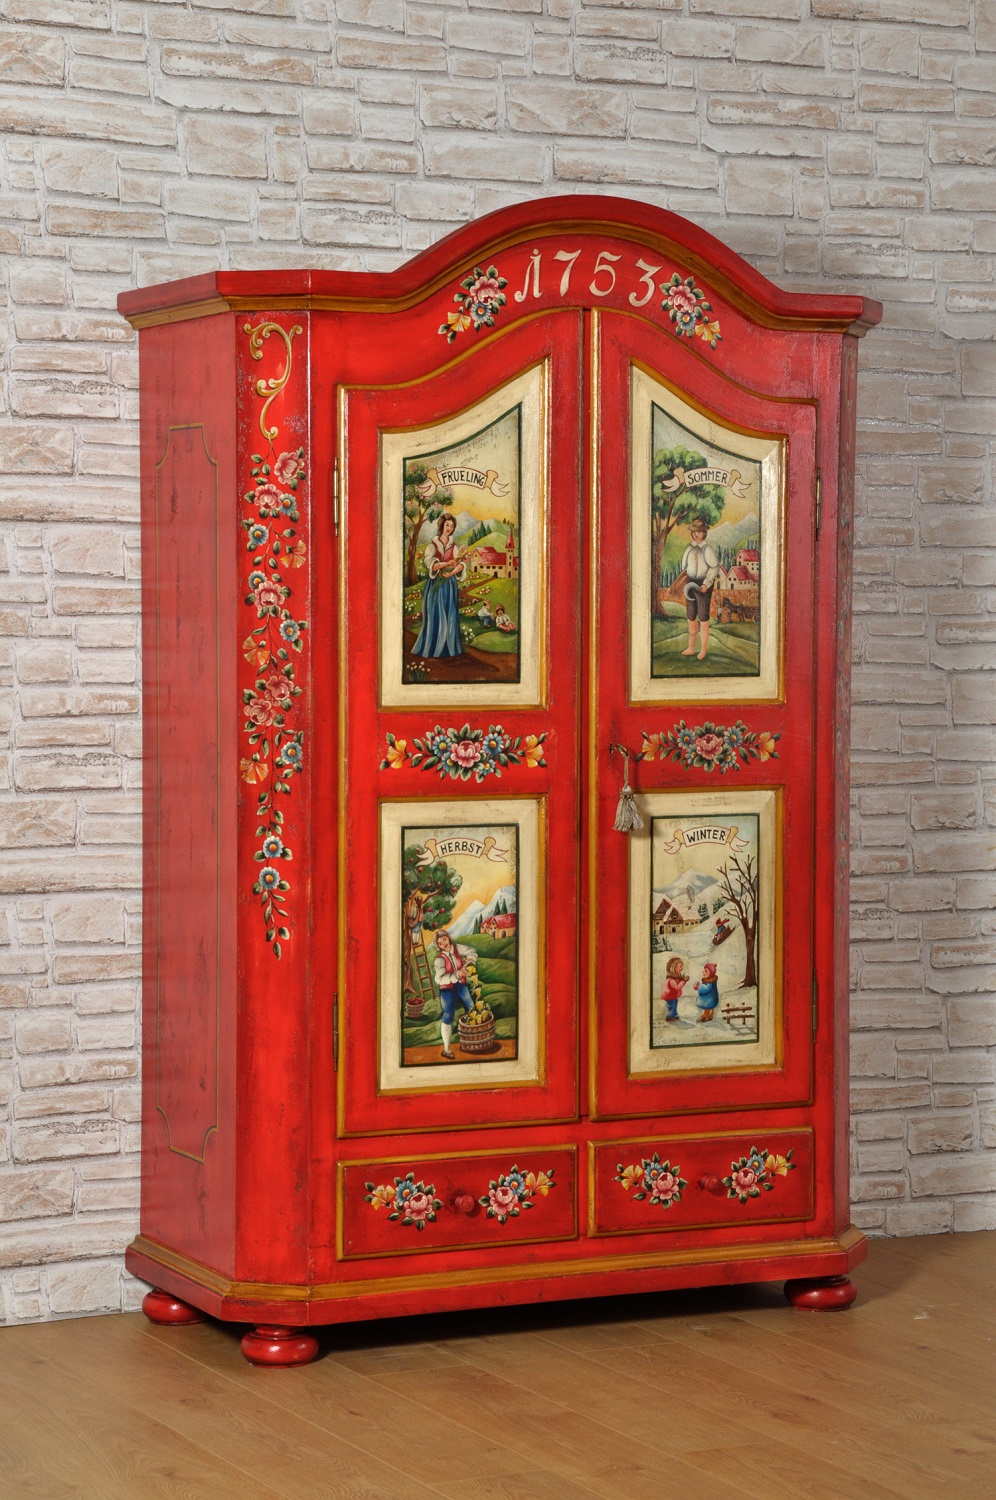 Armadio 4 Ante Decorato A Mano.Double Leaf Door Shaped Cupboard With Four Seasons Decoration In